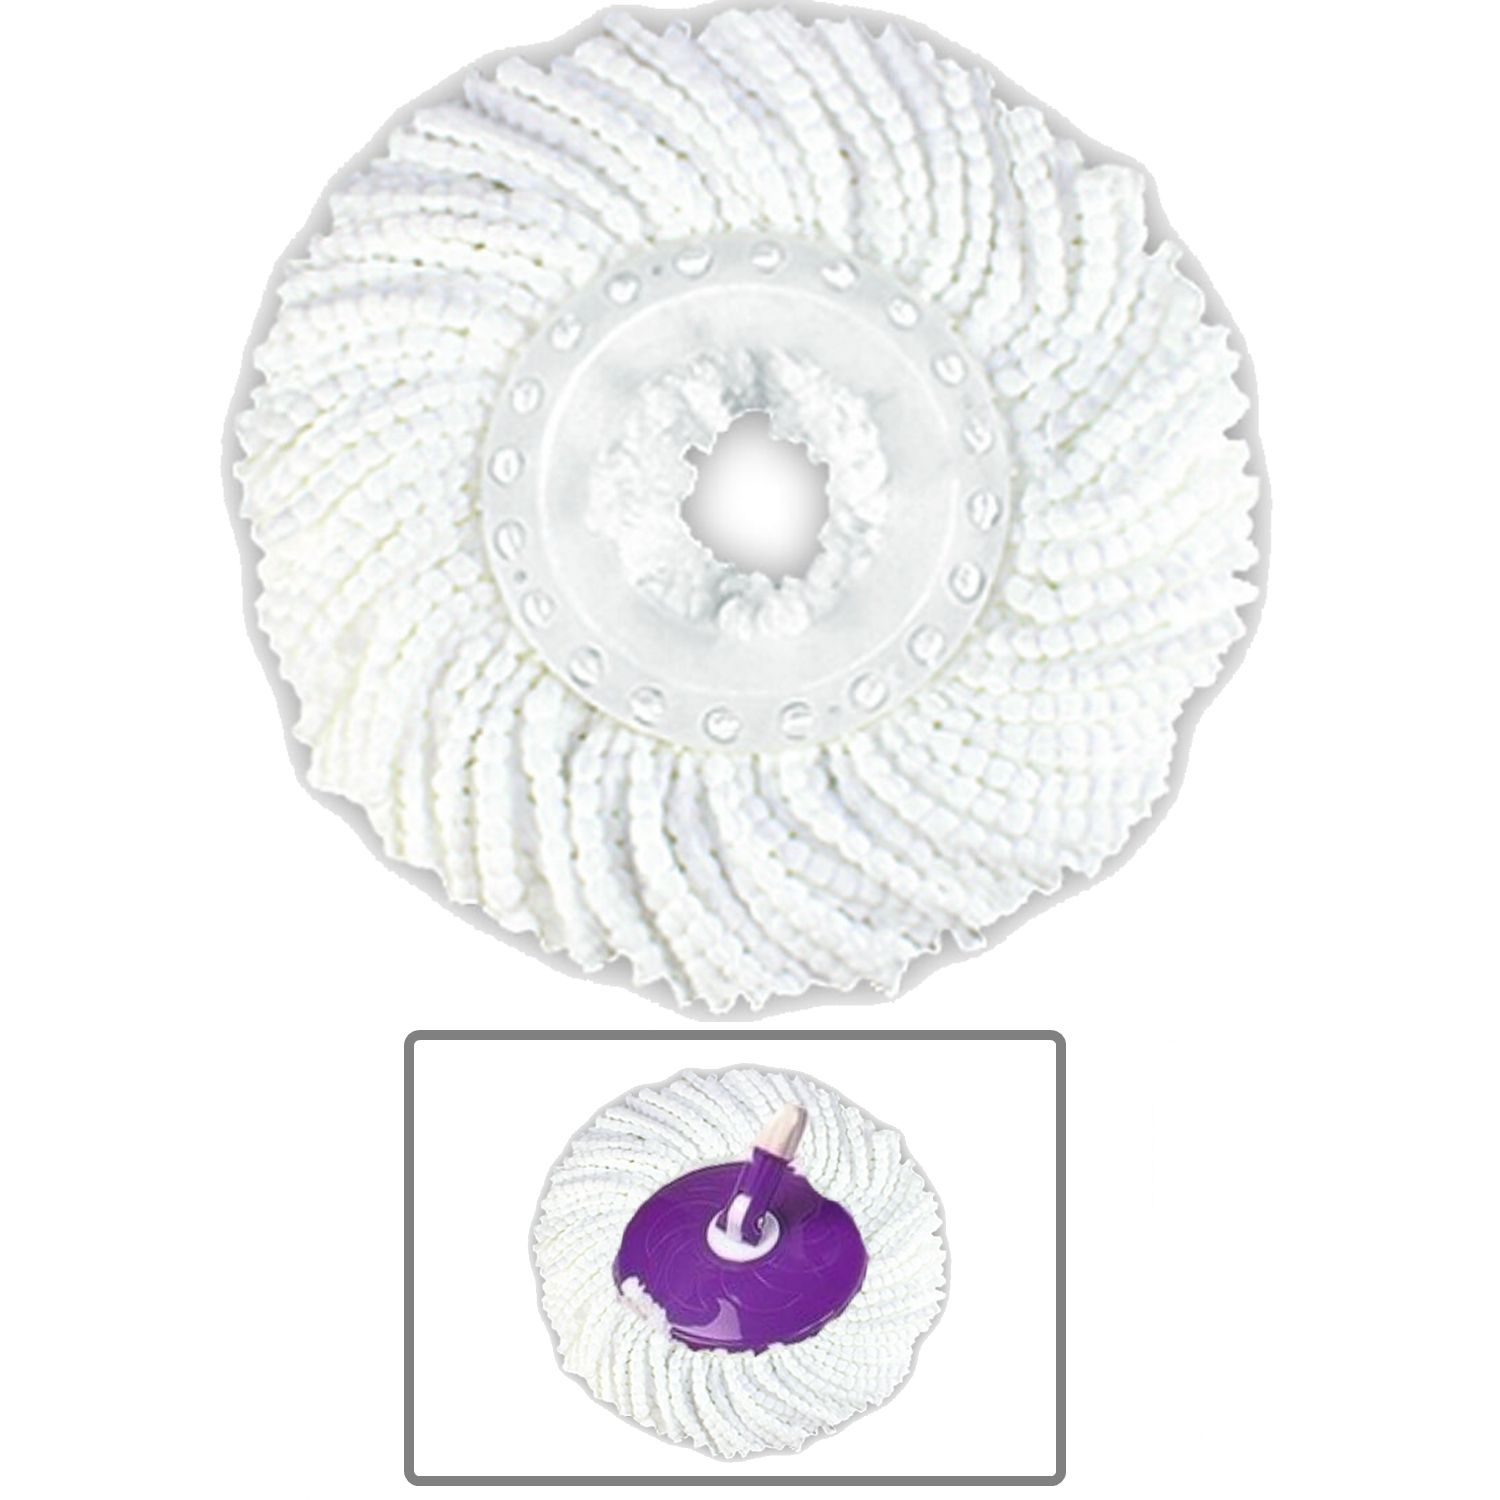 Professional Cotton Replacement Mop Head For Rotary Spin